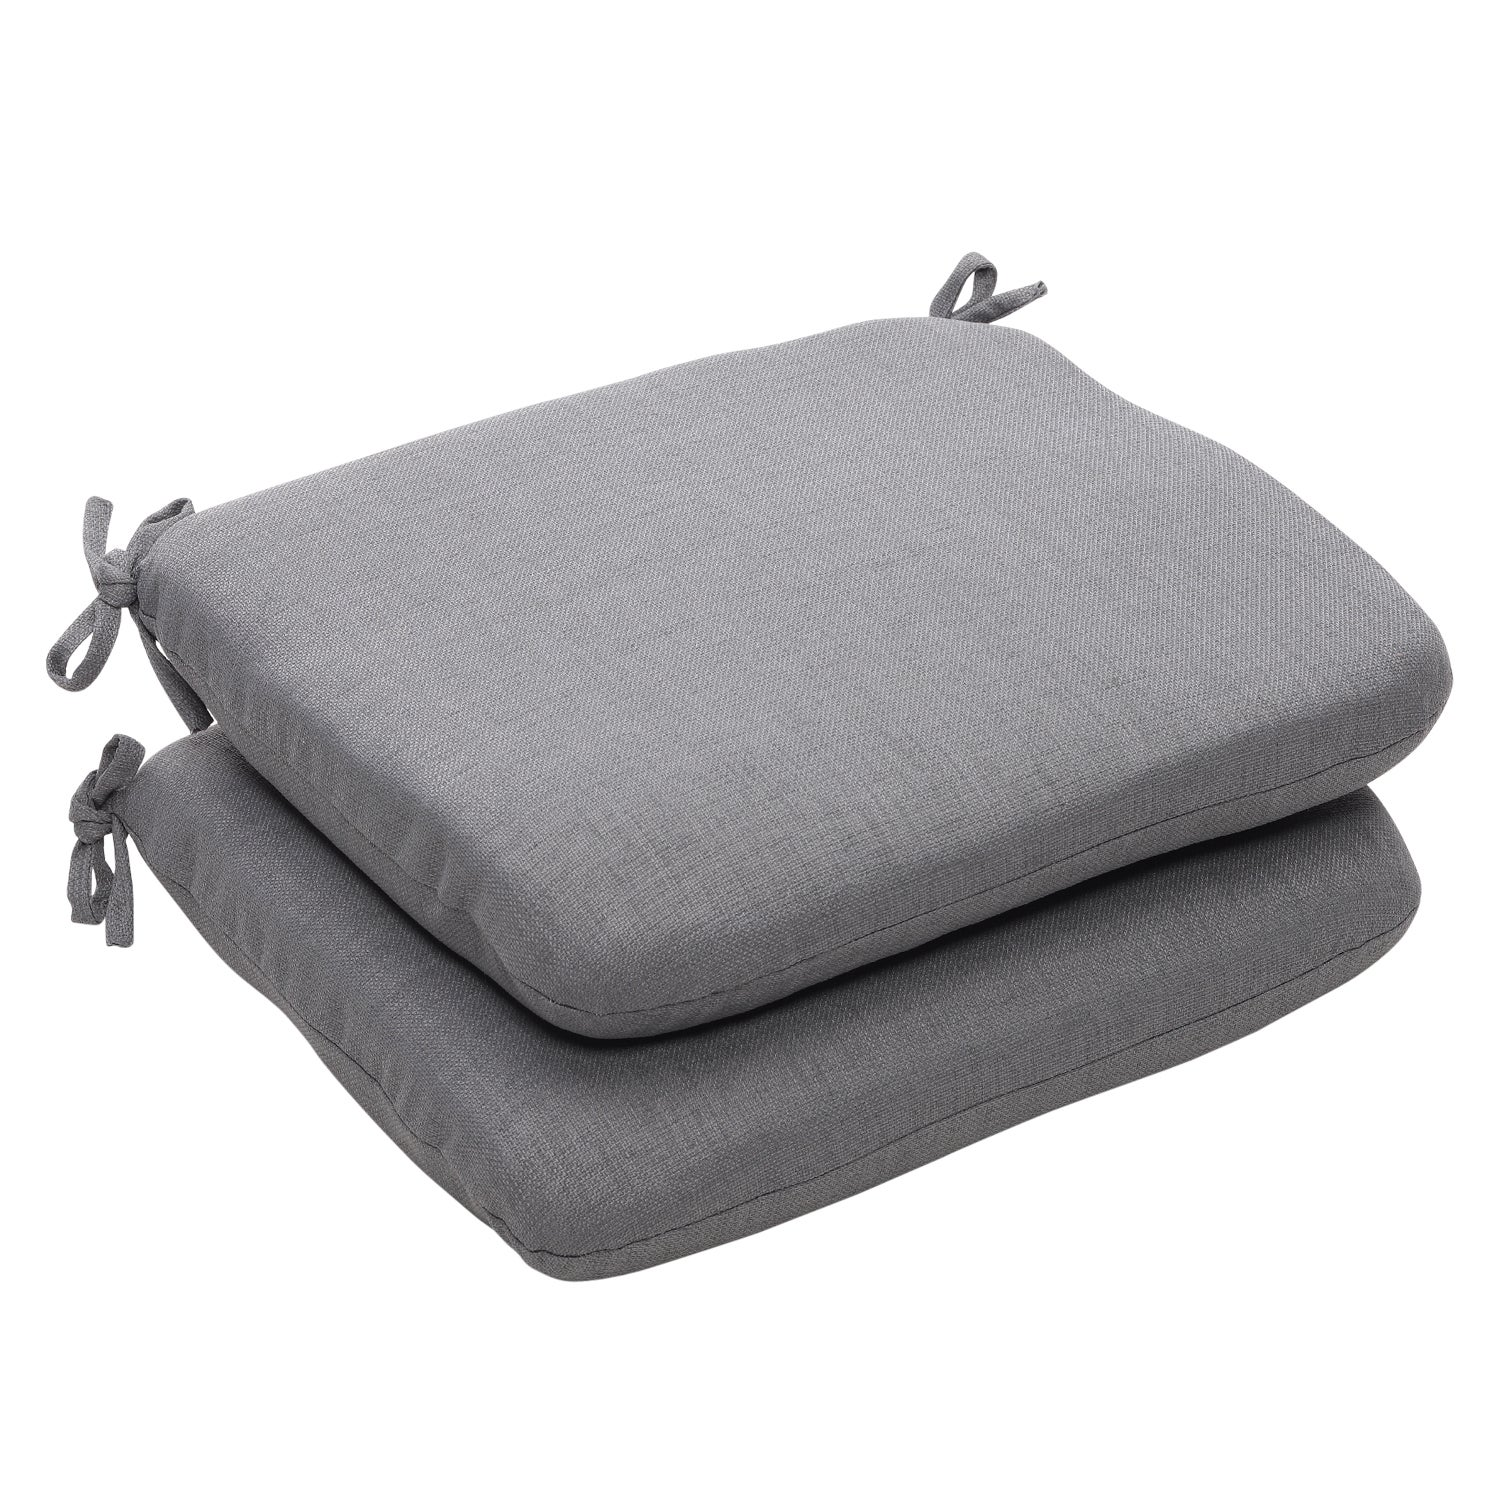 Outdoor Gray Textured Solid Rounded Seat Cushions (Set of 2)